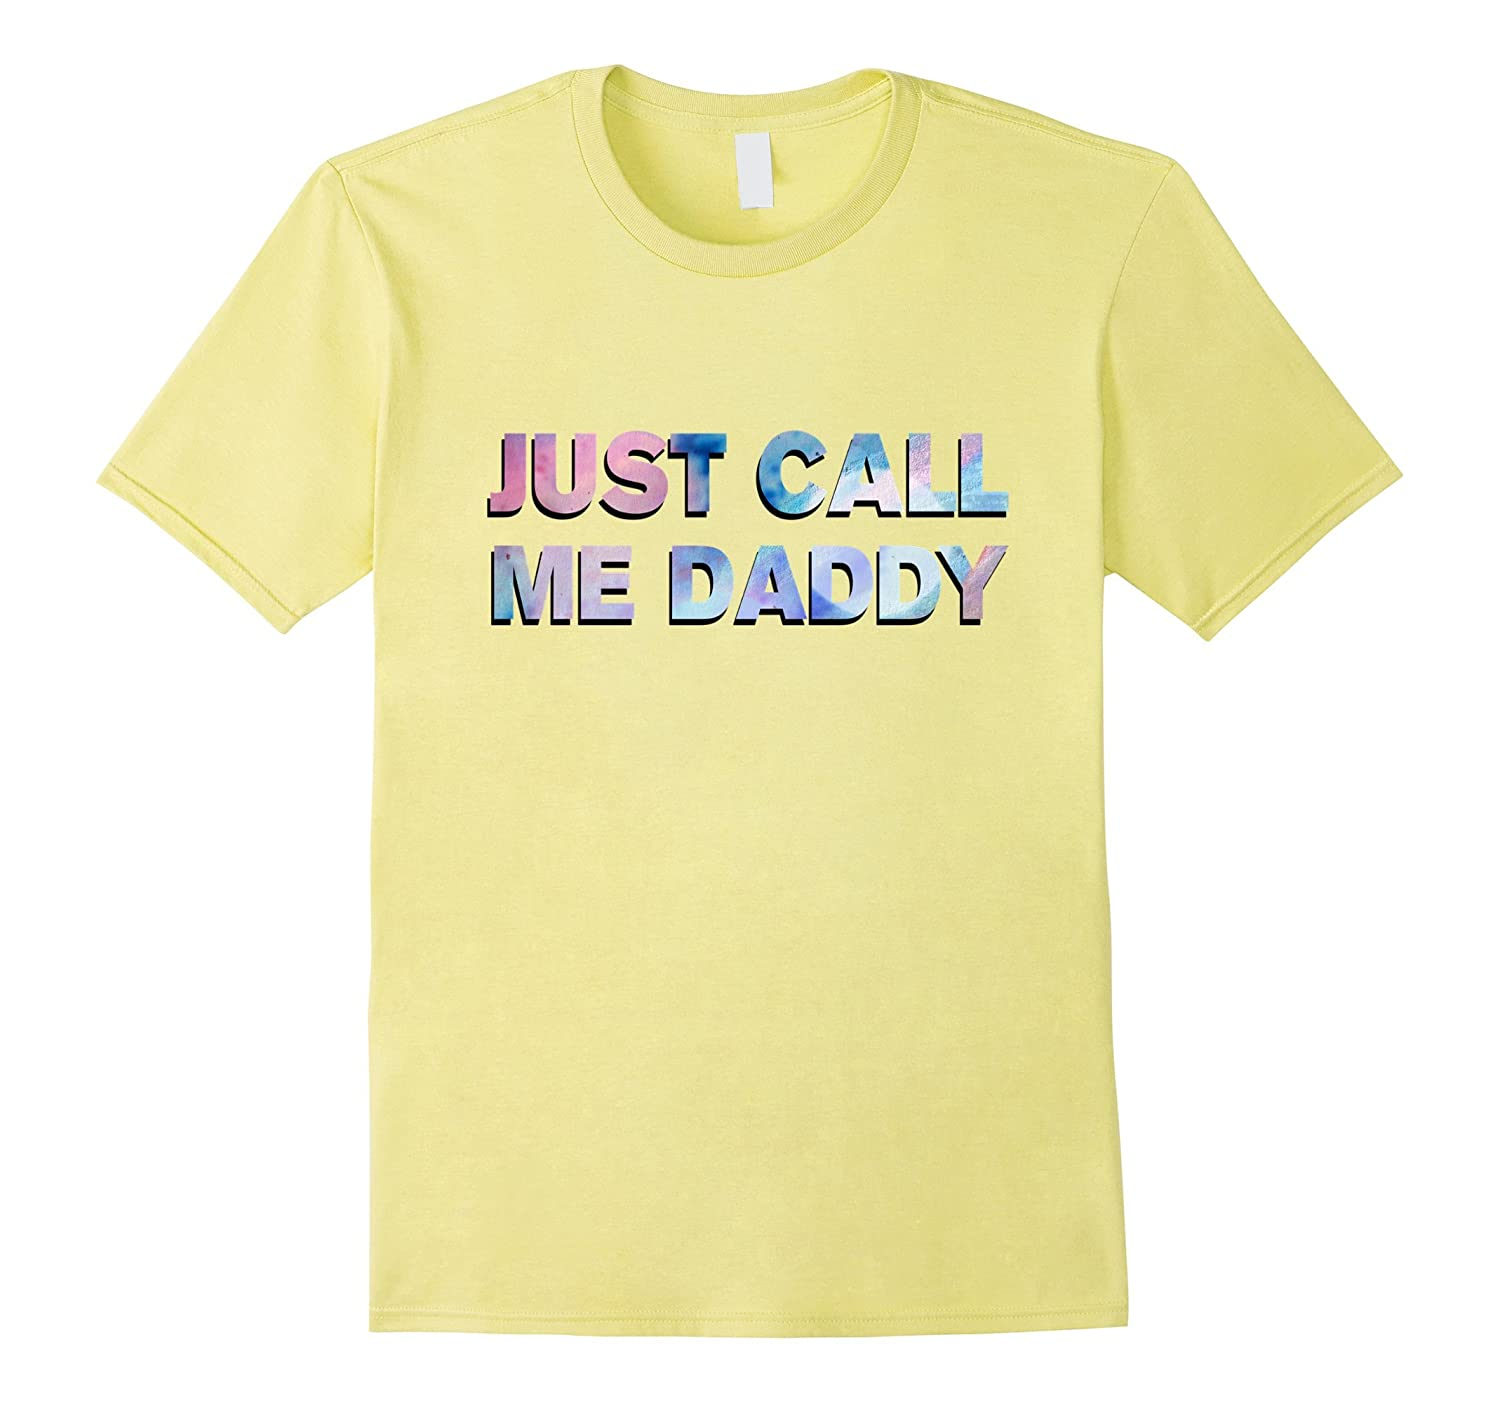 Just call me daddy shirt dad t-shirt-TH